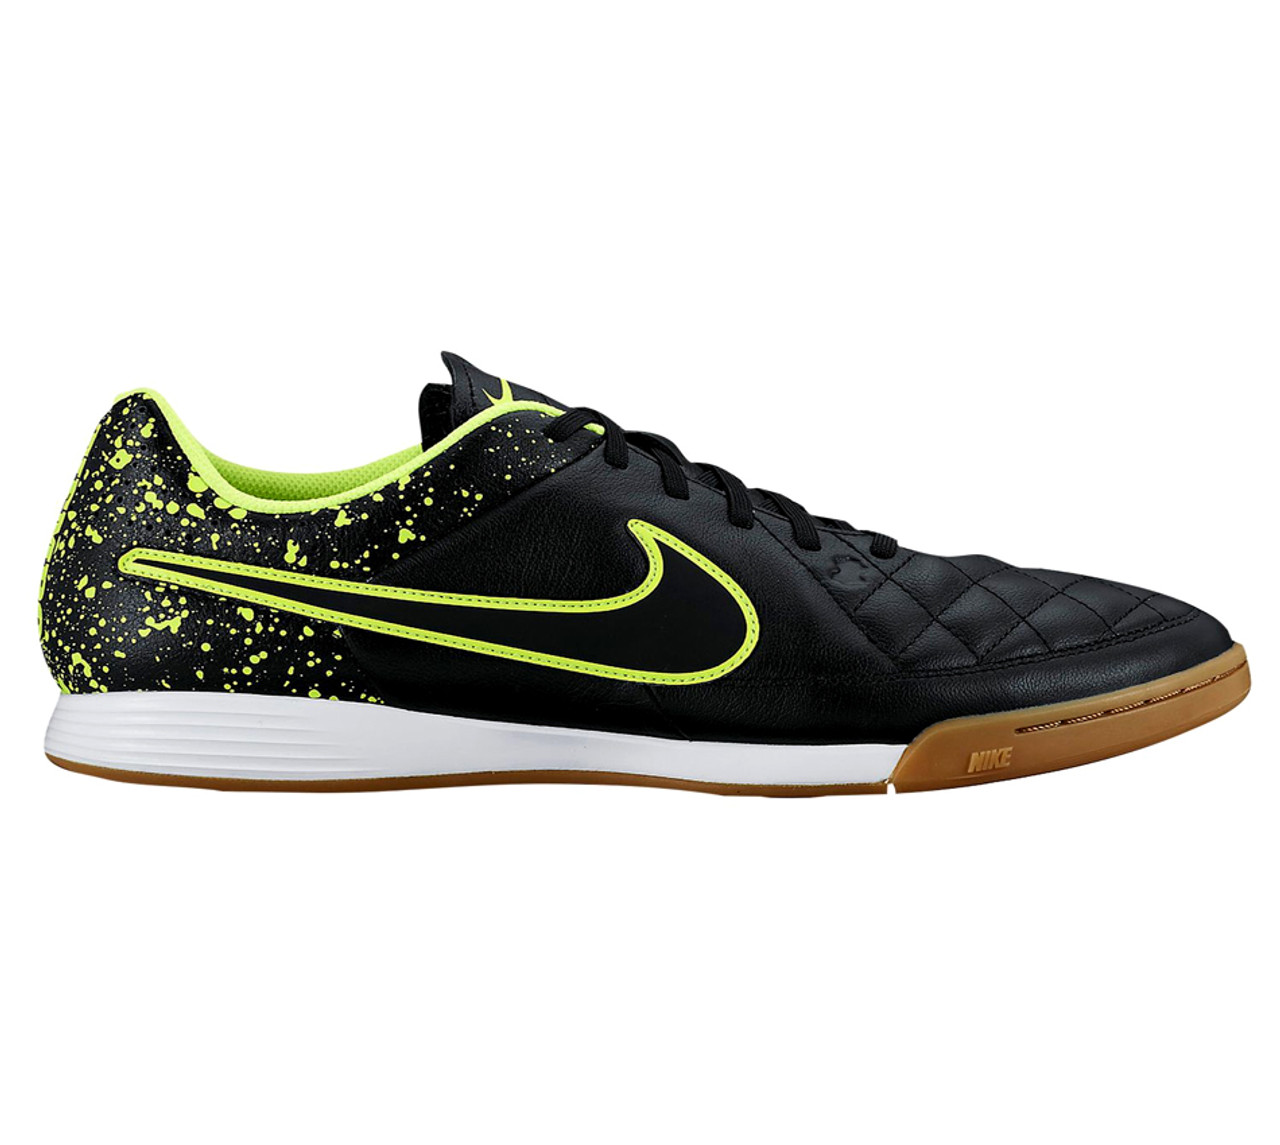 NIKE TIEMPO GENIO LEATHER IC BLACK/VOLT indoor soccer shoes